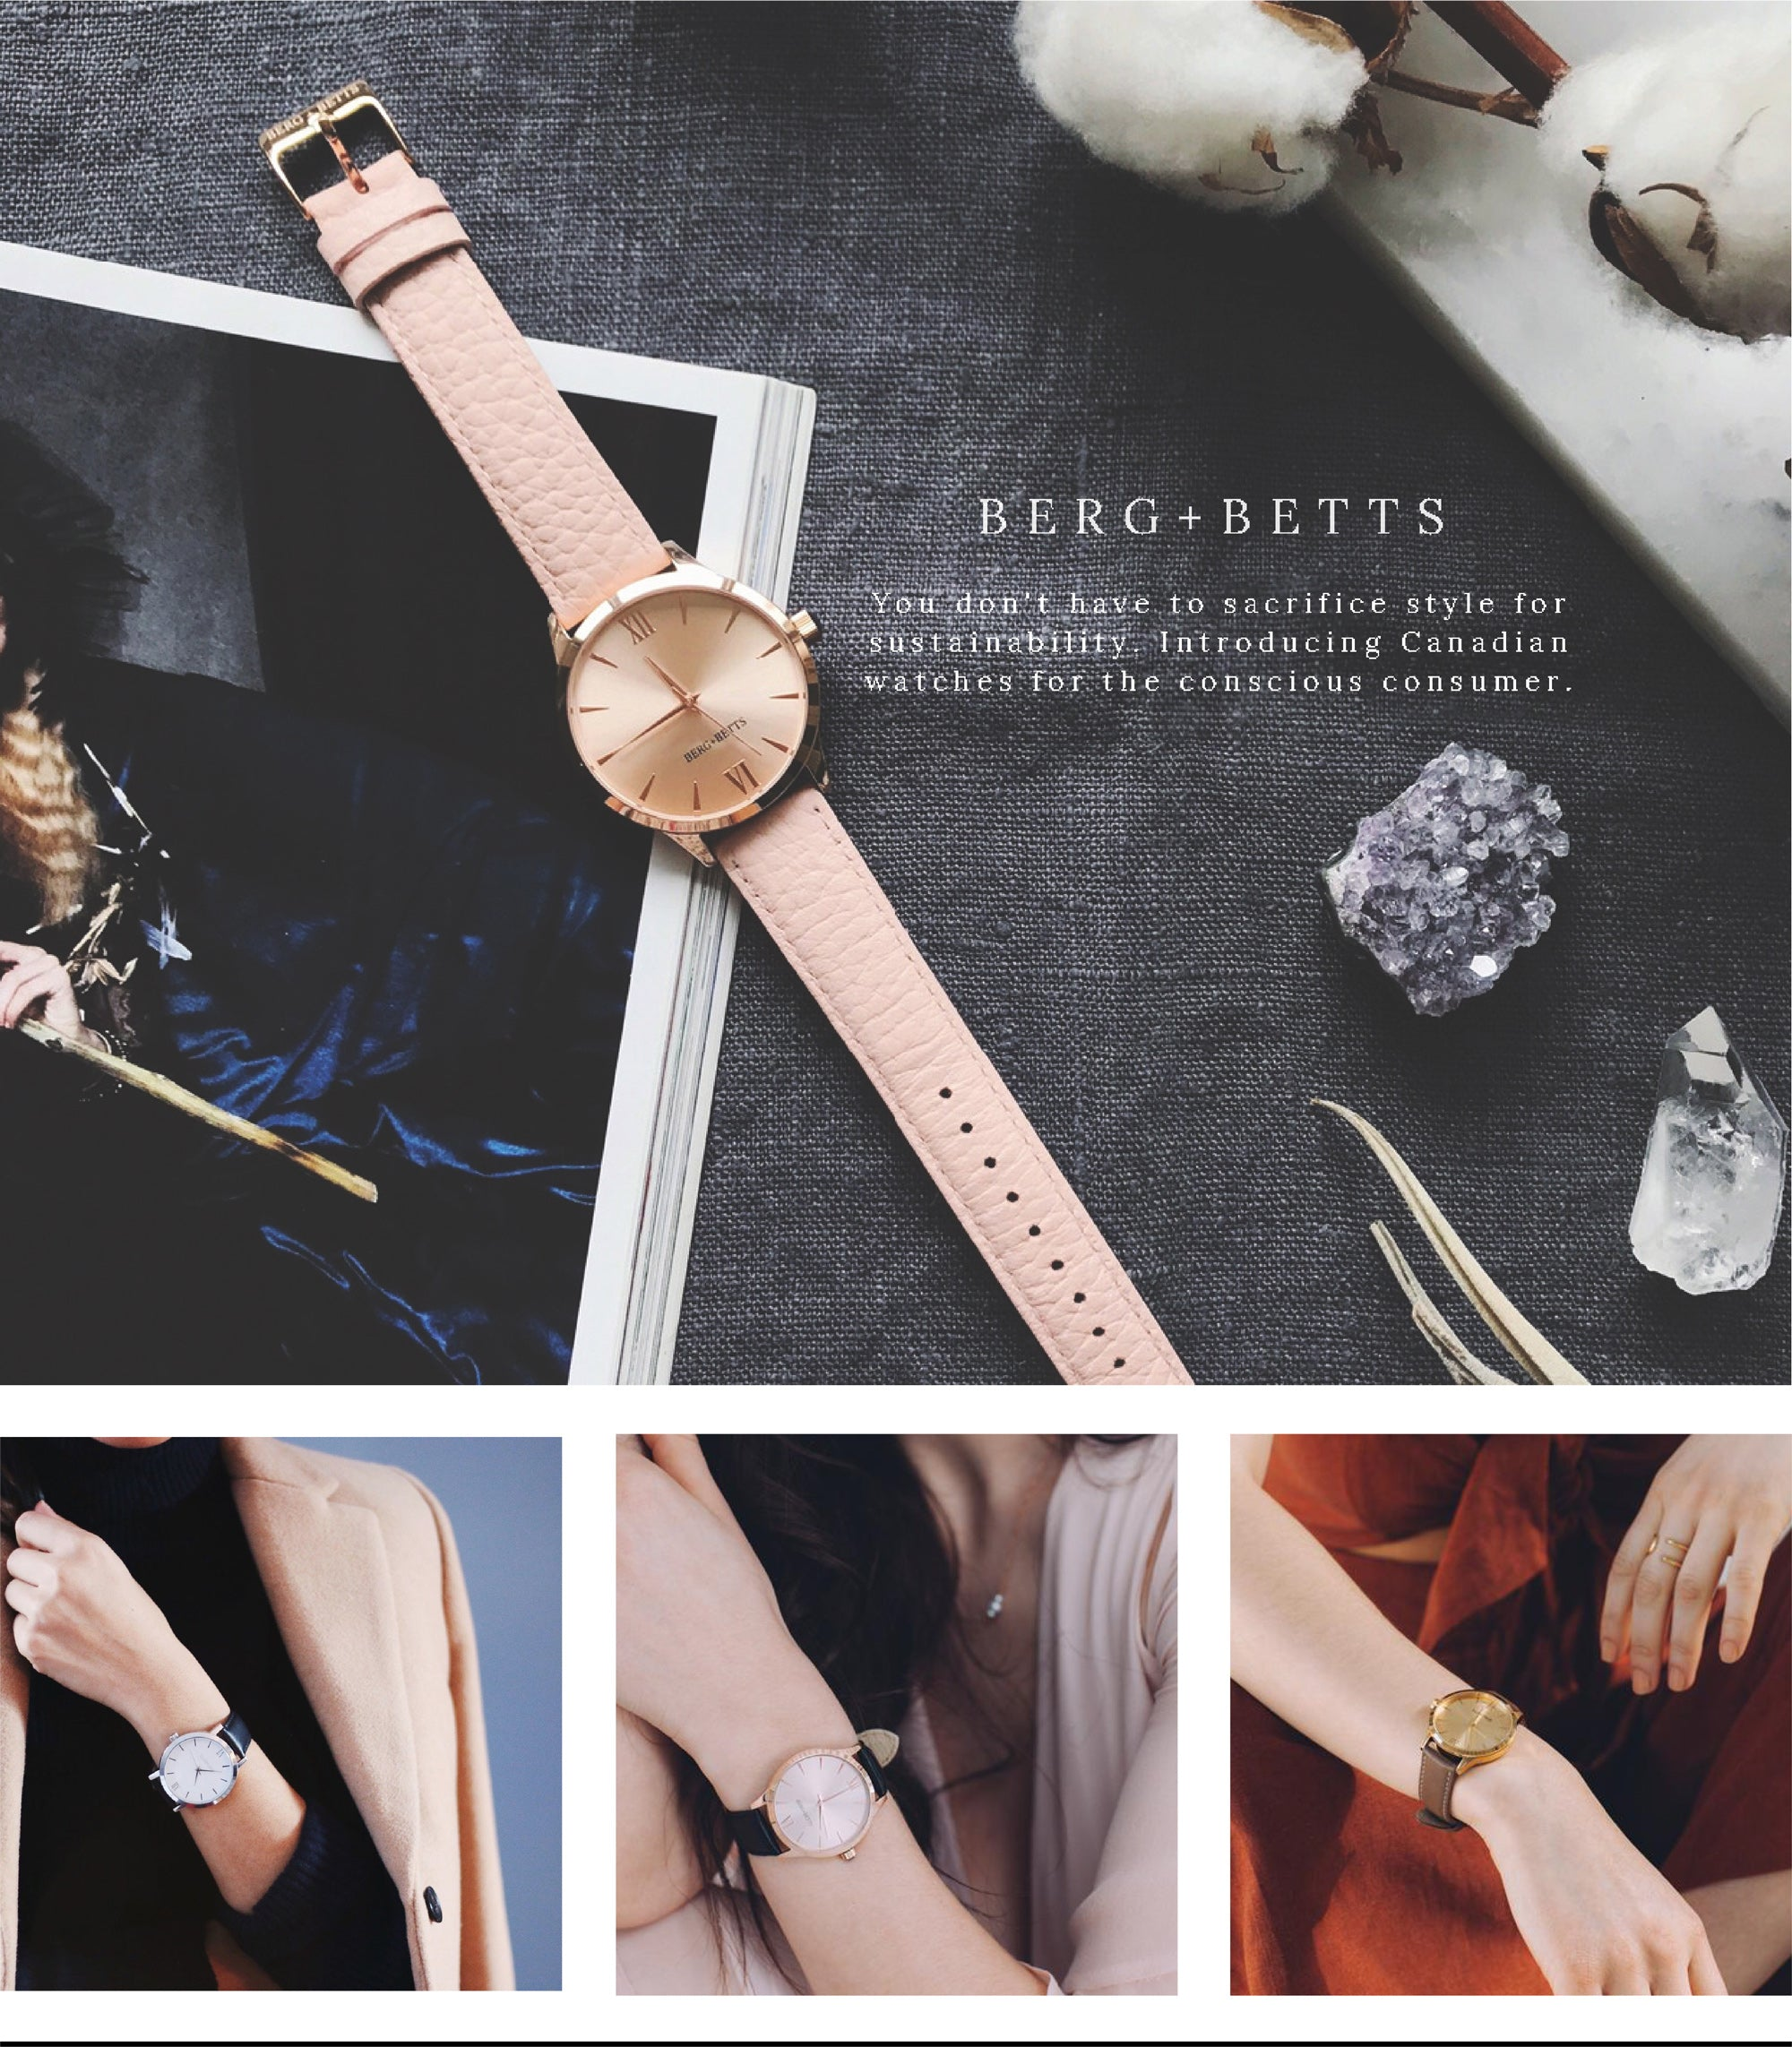 Berg + Betts | Learn how you can carry our sustainably made in Canada watches